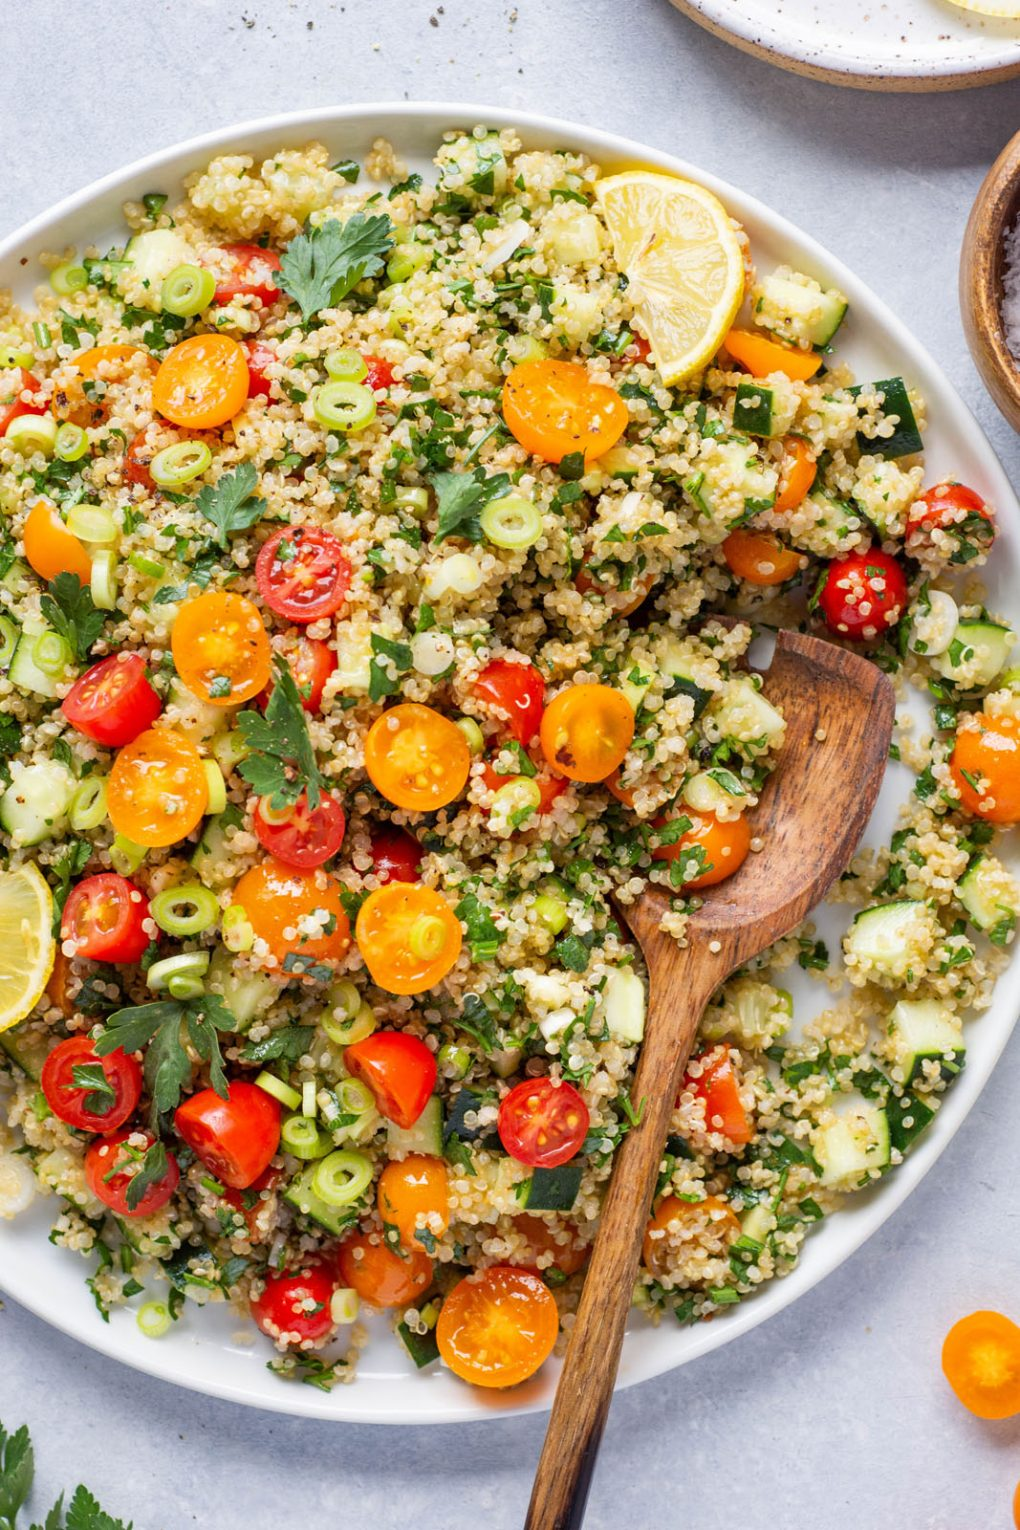 Overhead shot of a large colorful plate of quinoa tabbouleh with red and orange cherry tomatoes, parsley, green onions, and cucumber. Large wooden spoon placed at an angle on the white plate.